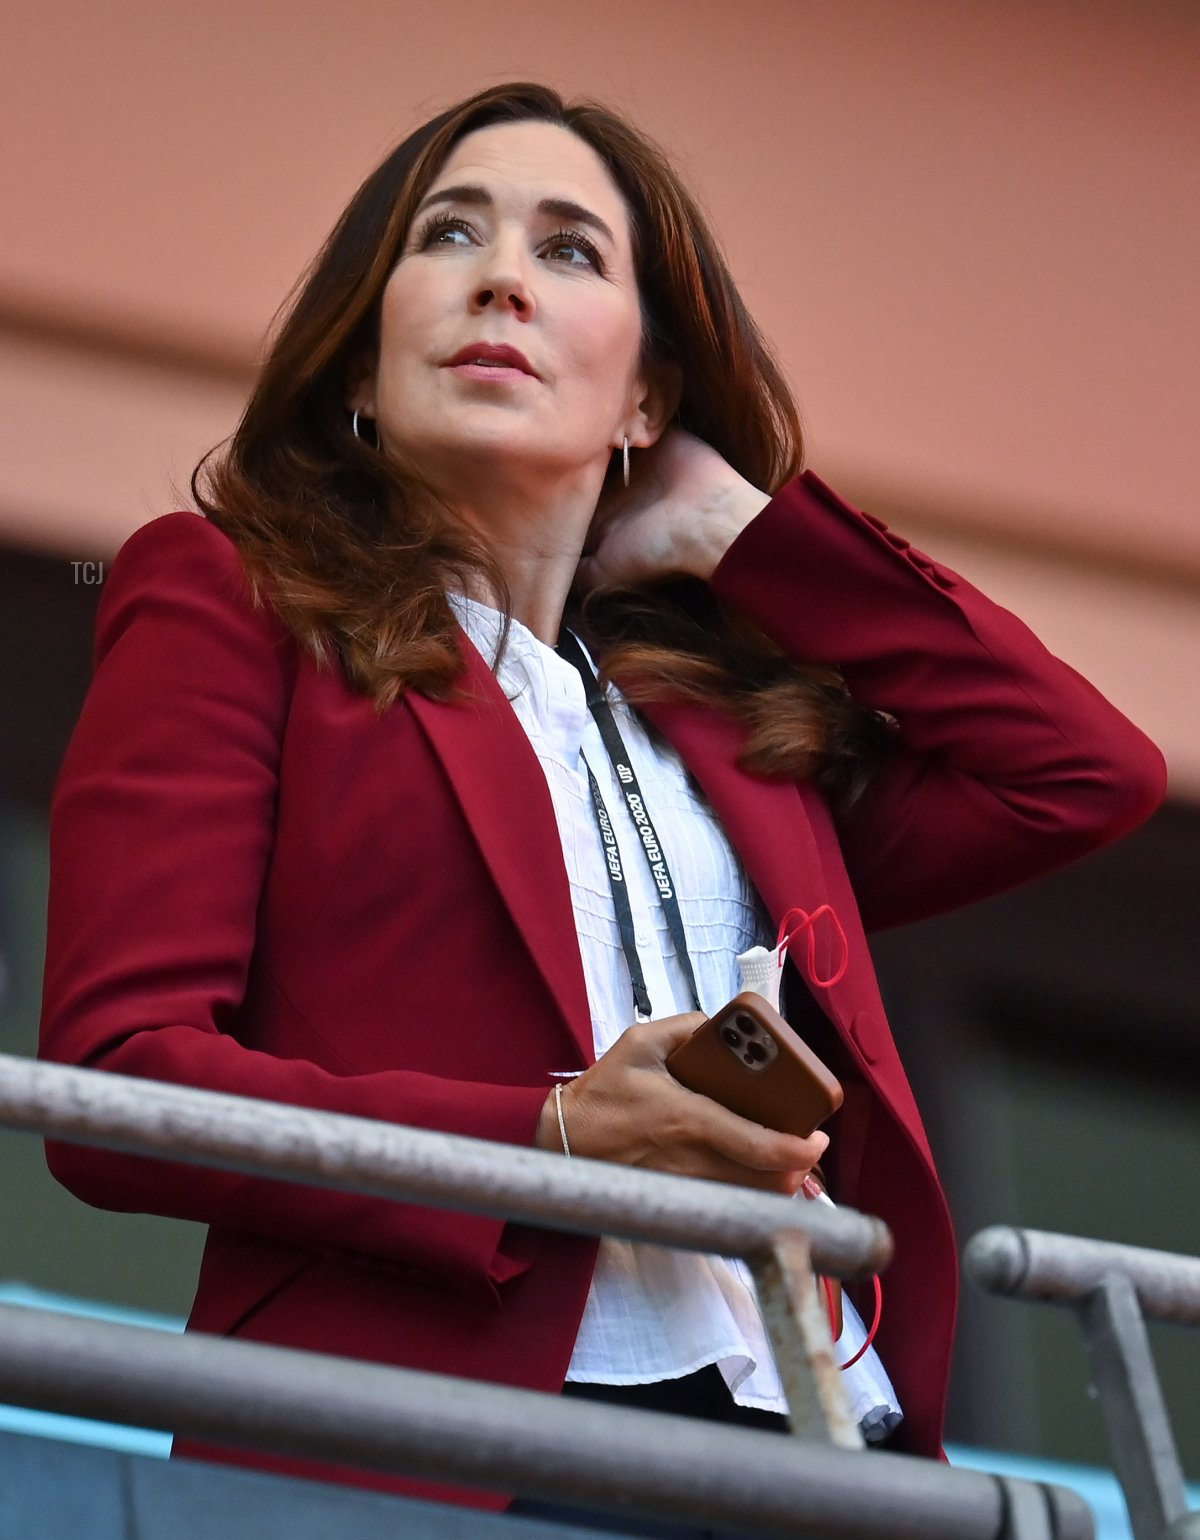 Mary Elizabeth, Crown Princess of Denmark looks on prior to the UEFA Euro 2020 Championship Semi-final match between England and Denmark at Wembley Stadium on July 07, 2021 in London, England